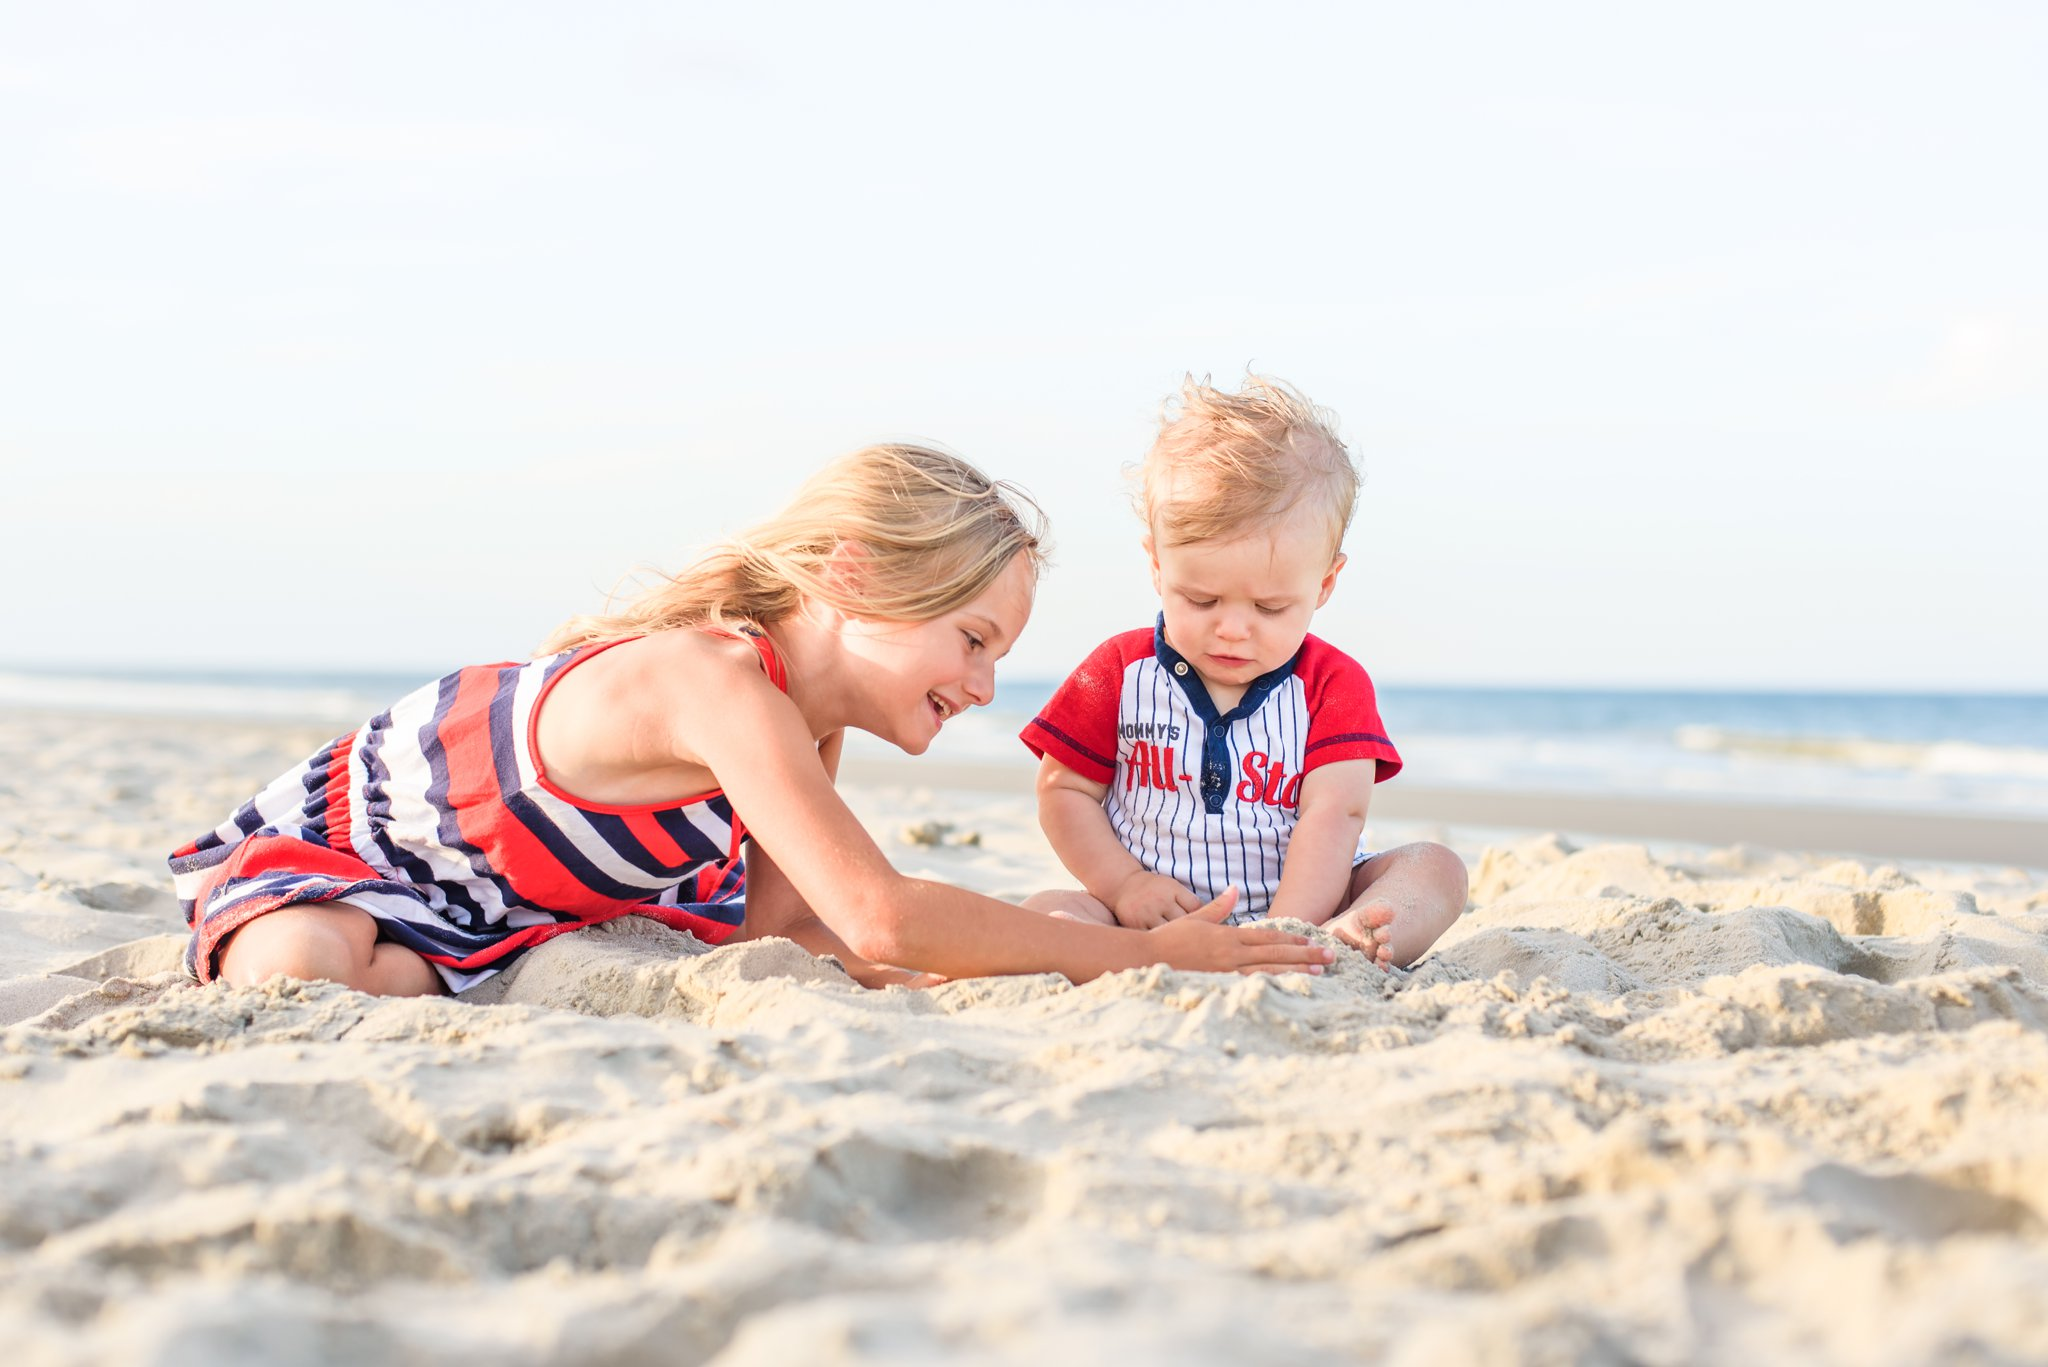 Makayla and Mason! Loved this one of her playing in the sand with him.